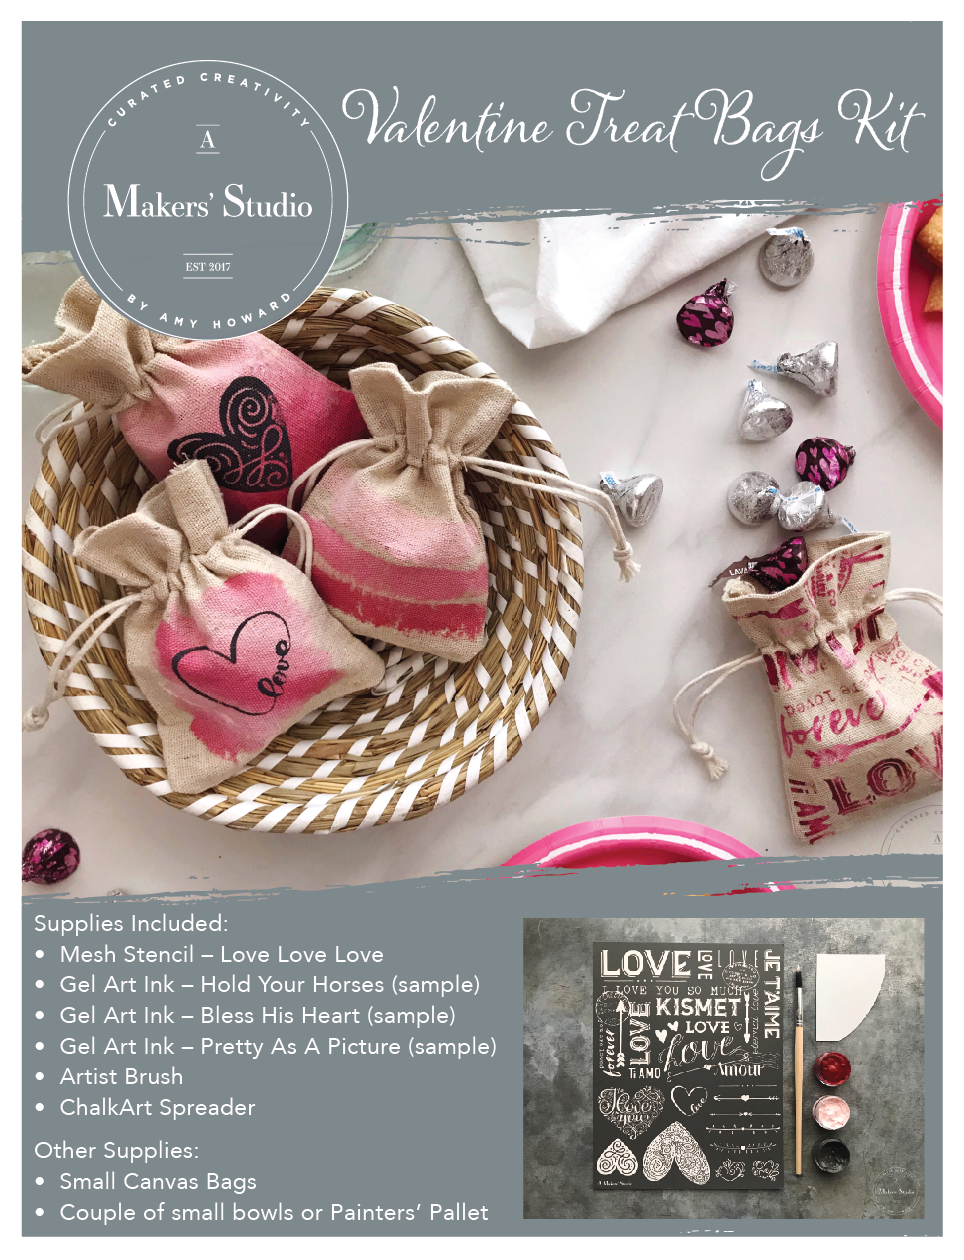 Valentine Treat Bag Kit